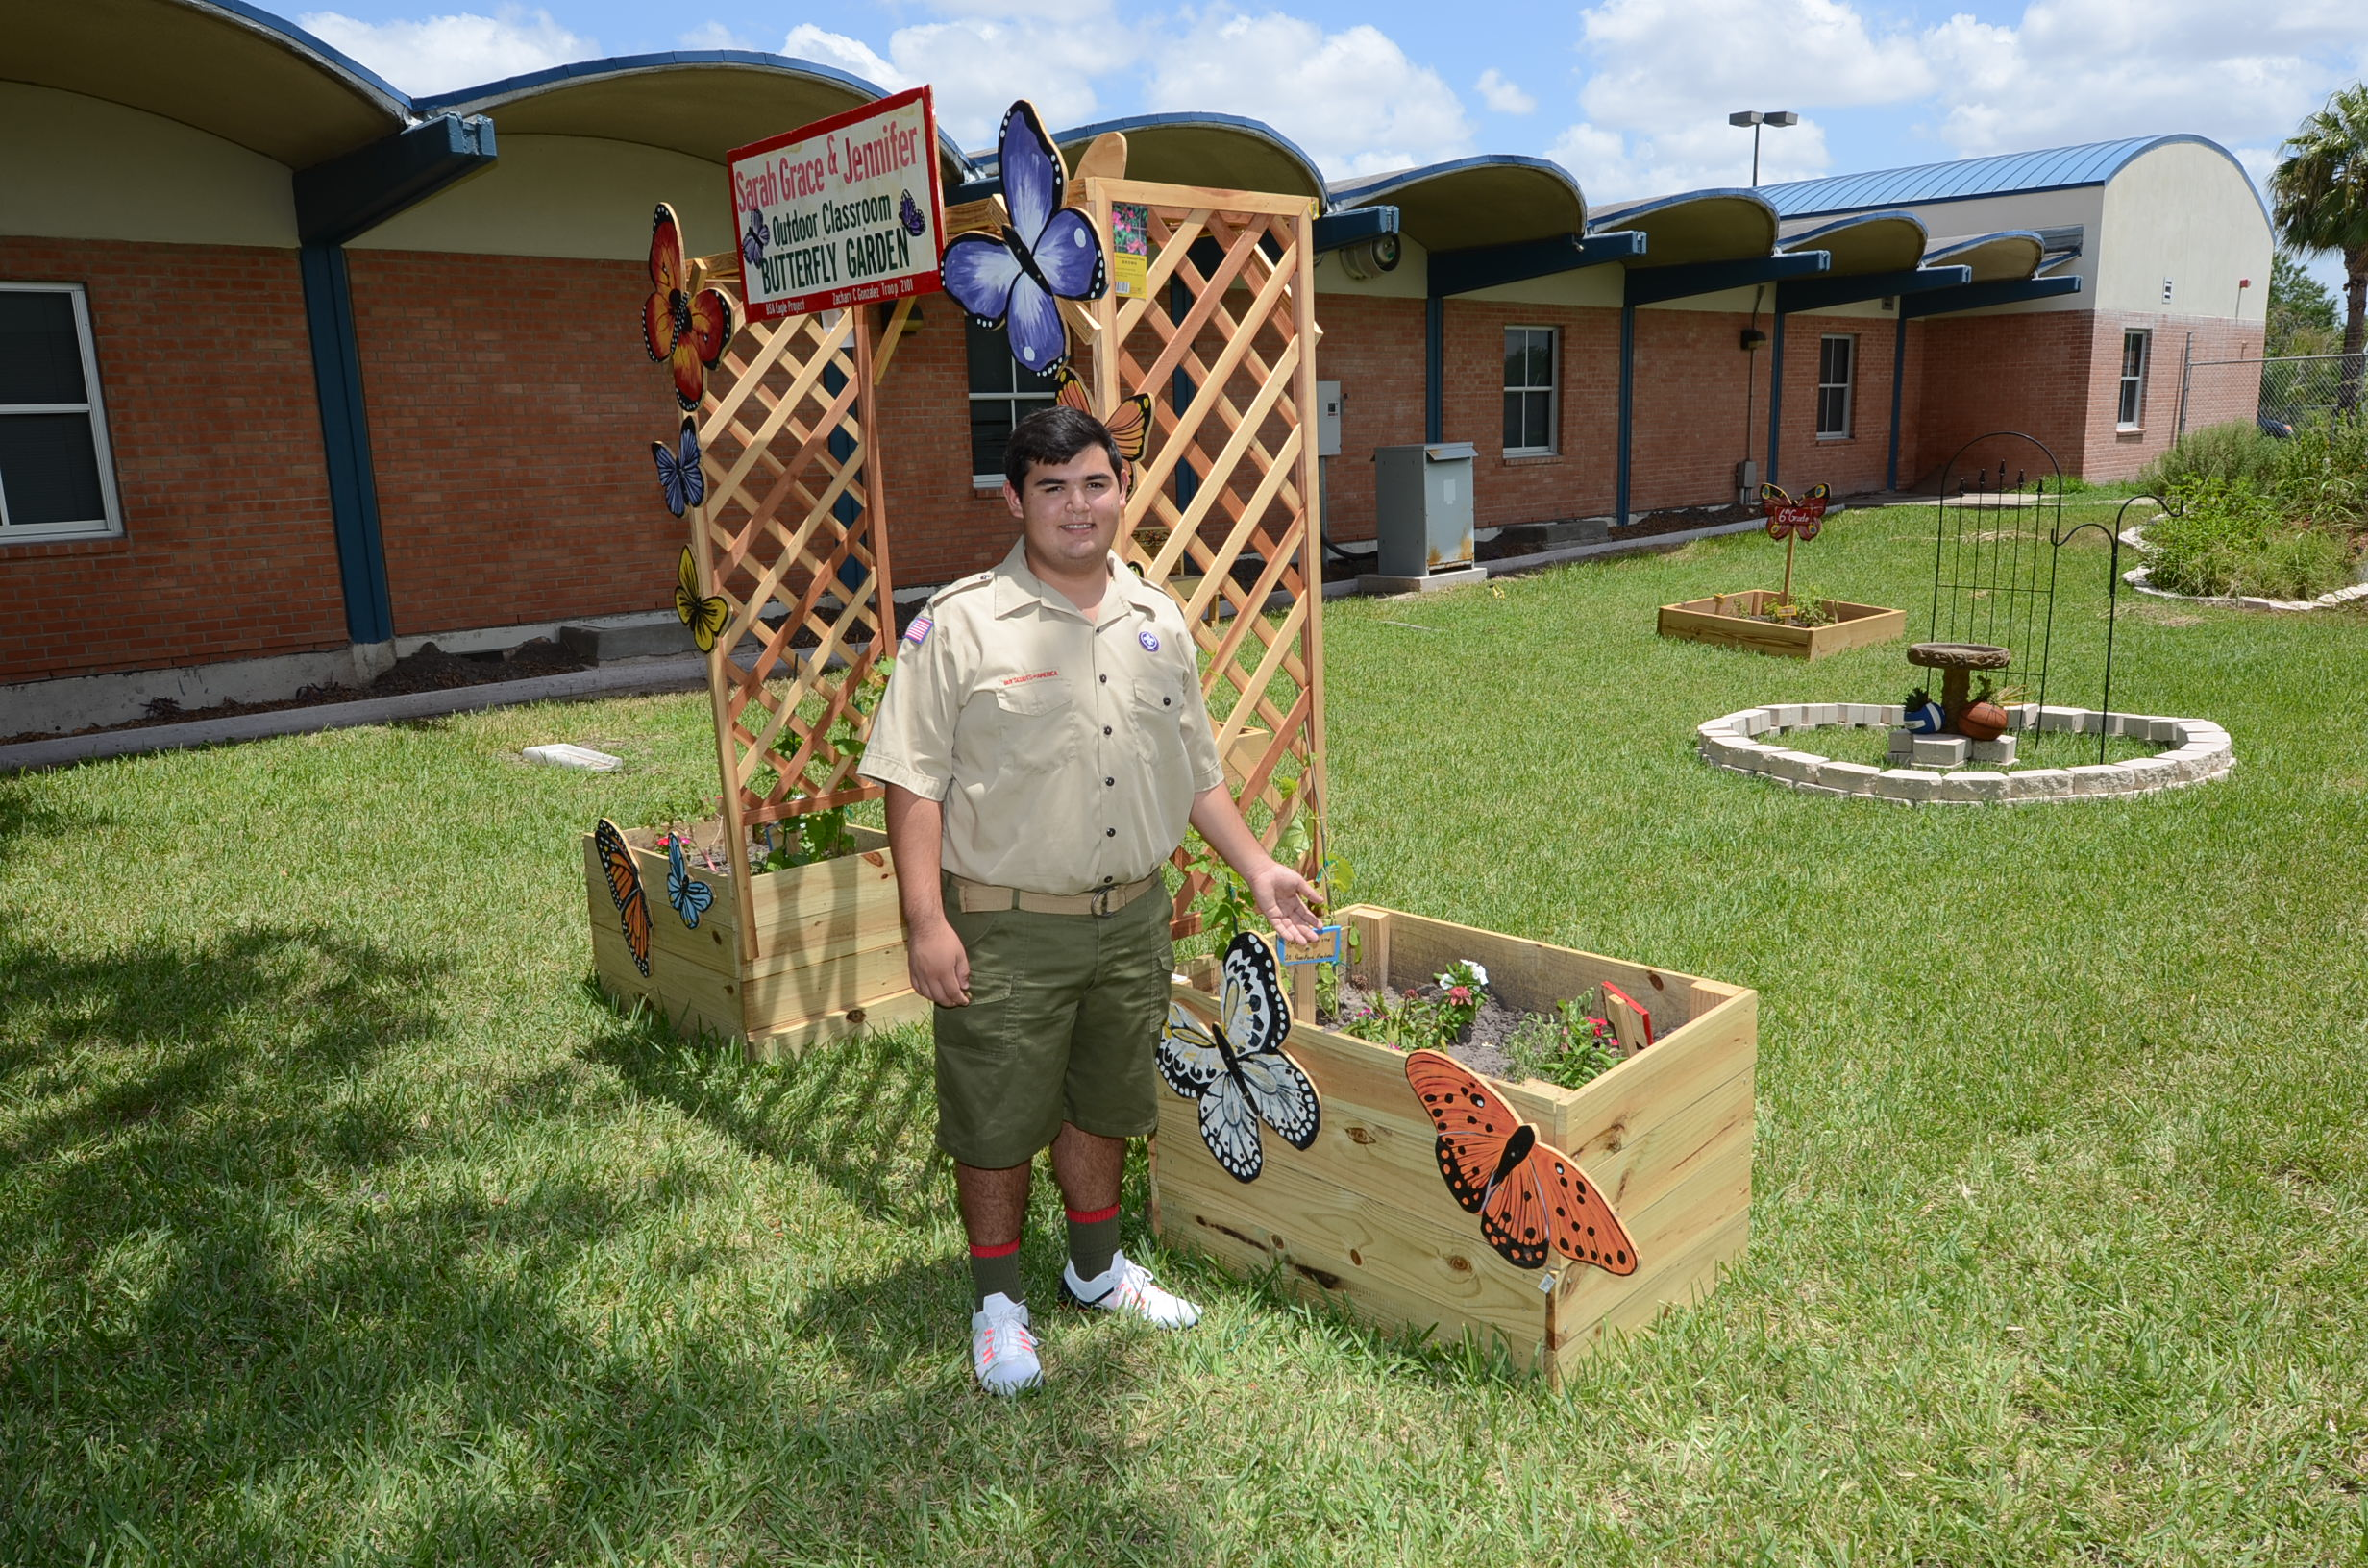 Eagle Scout hopeful builds outdoor classroom at former campus